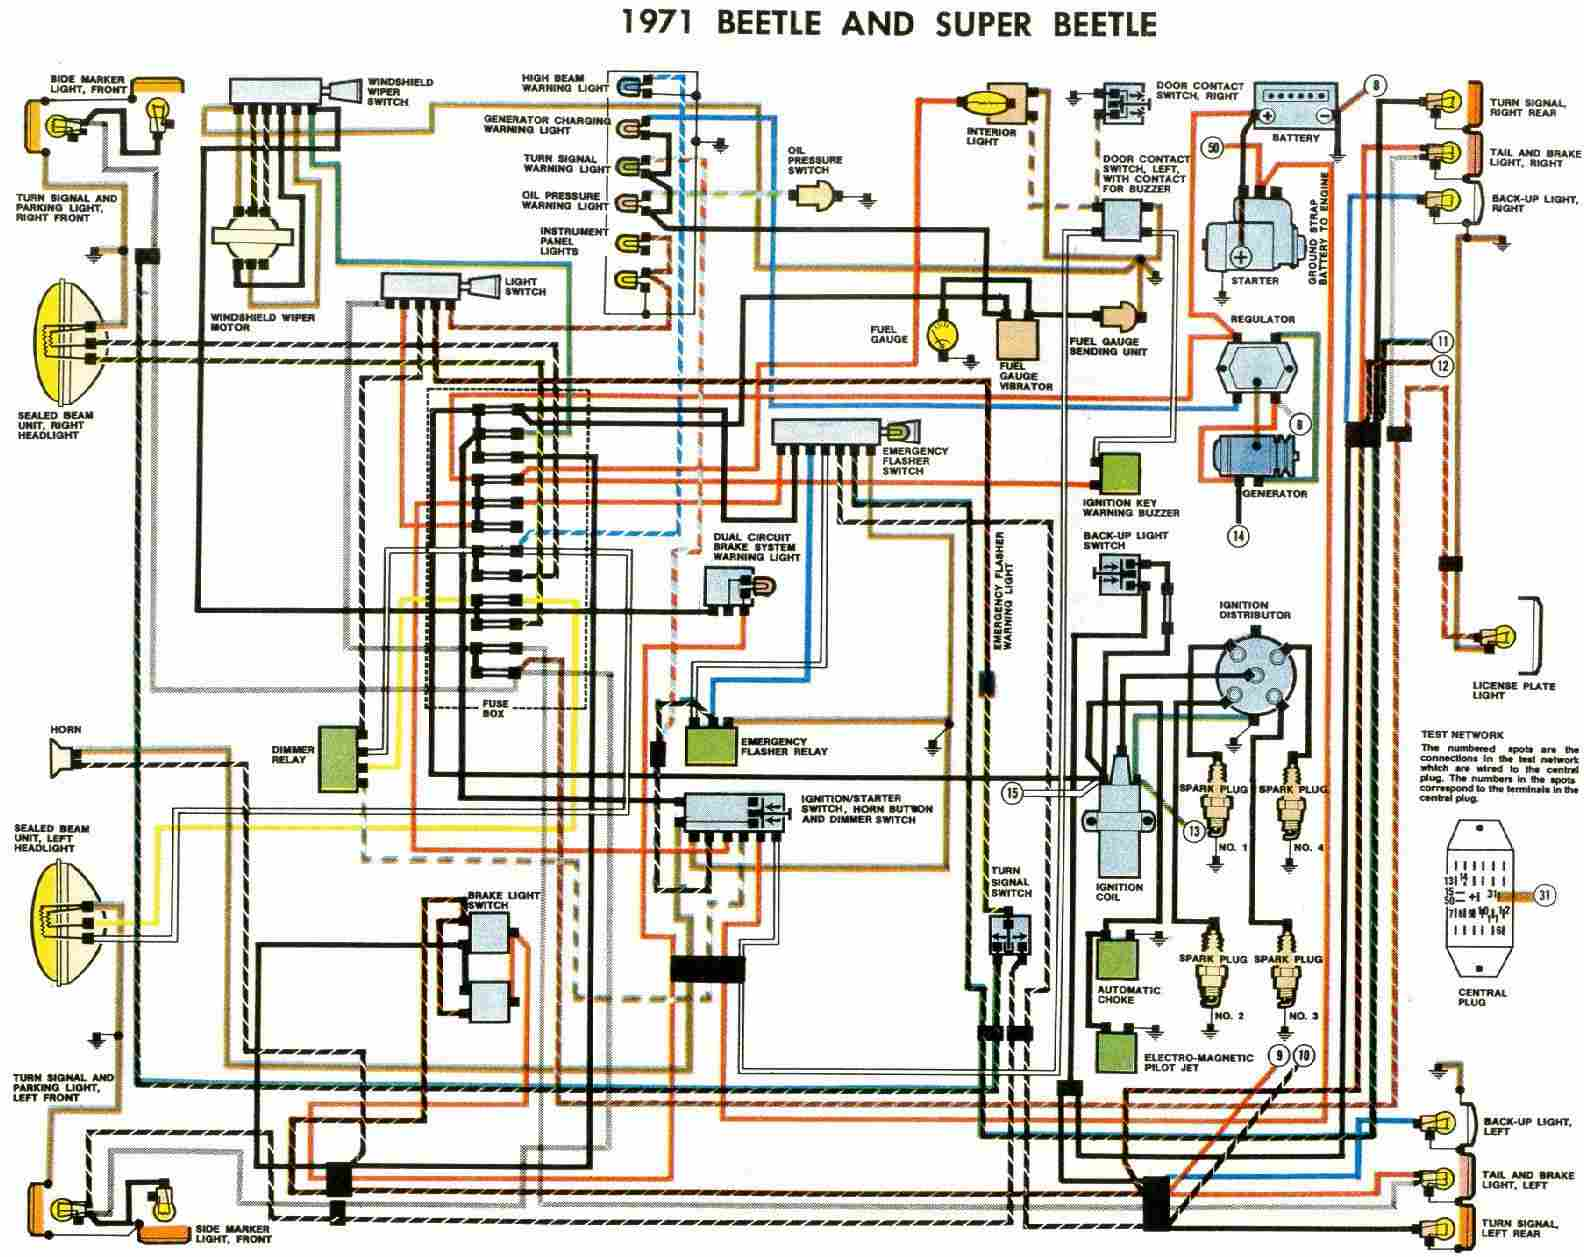 vw beetle and super beetle 1971 electrical wiring diagram